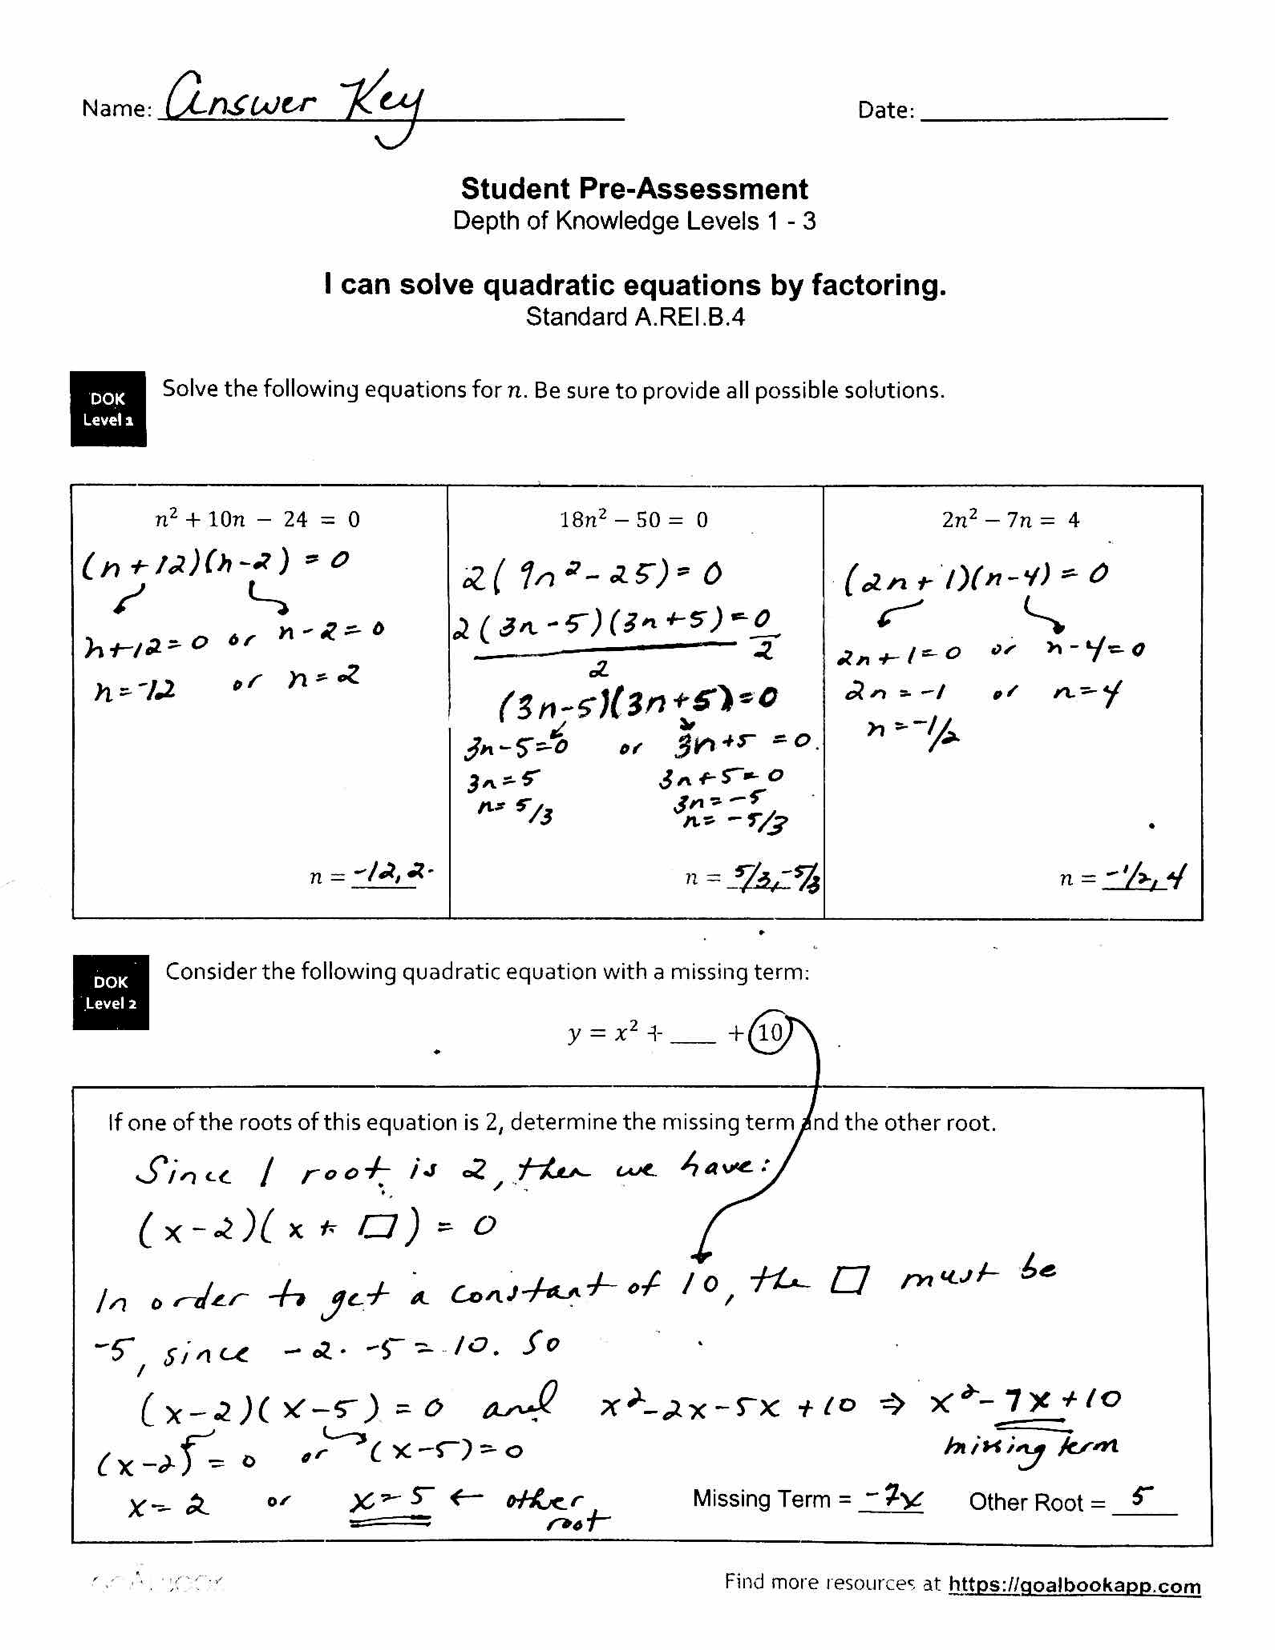 Hsa Rei 4 Solve Quadratic Equations